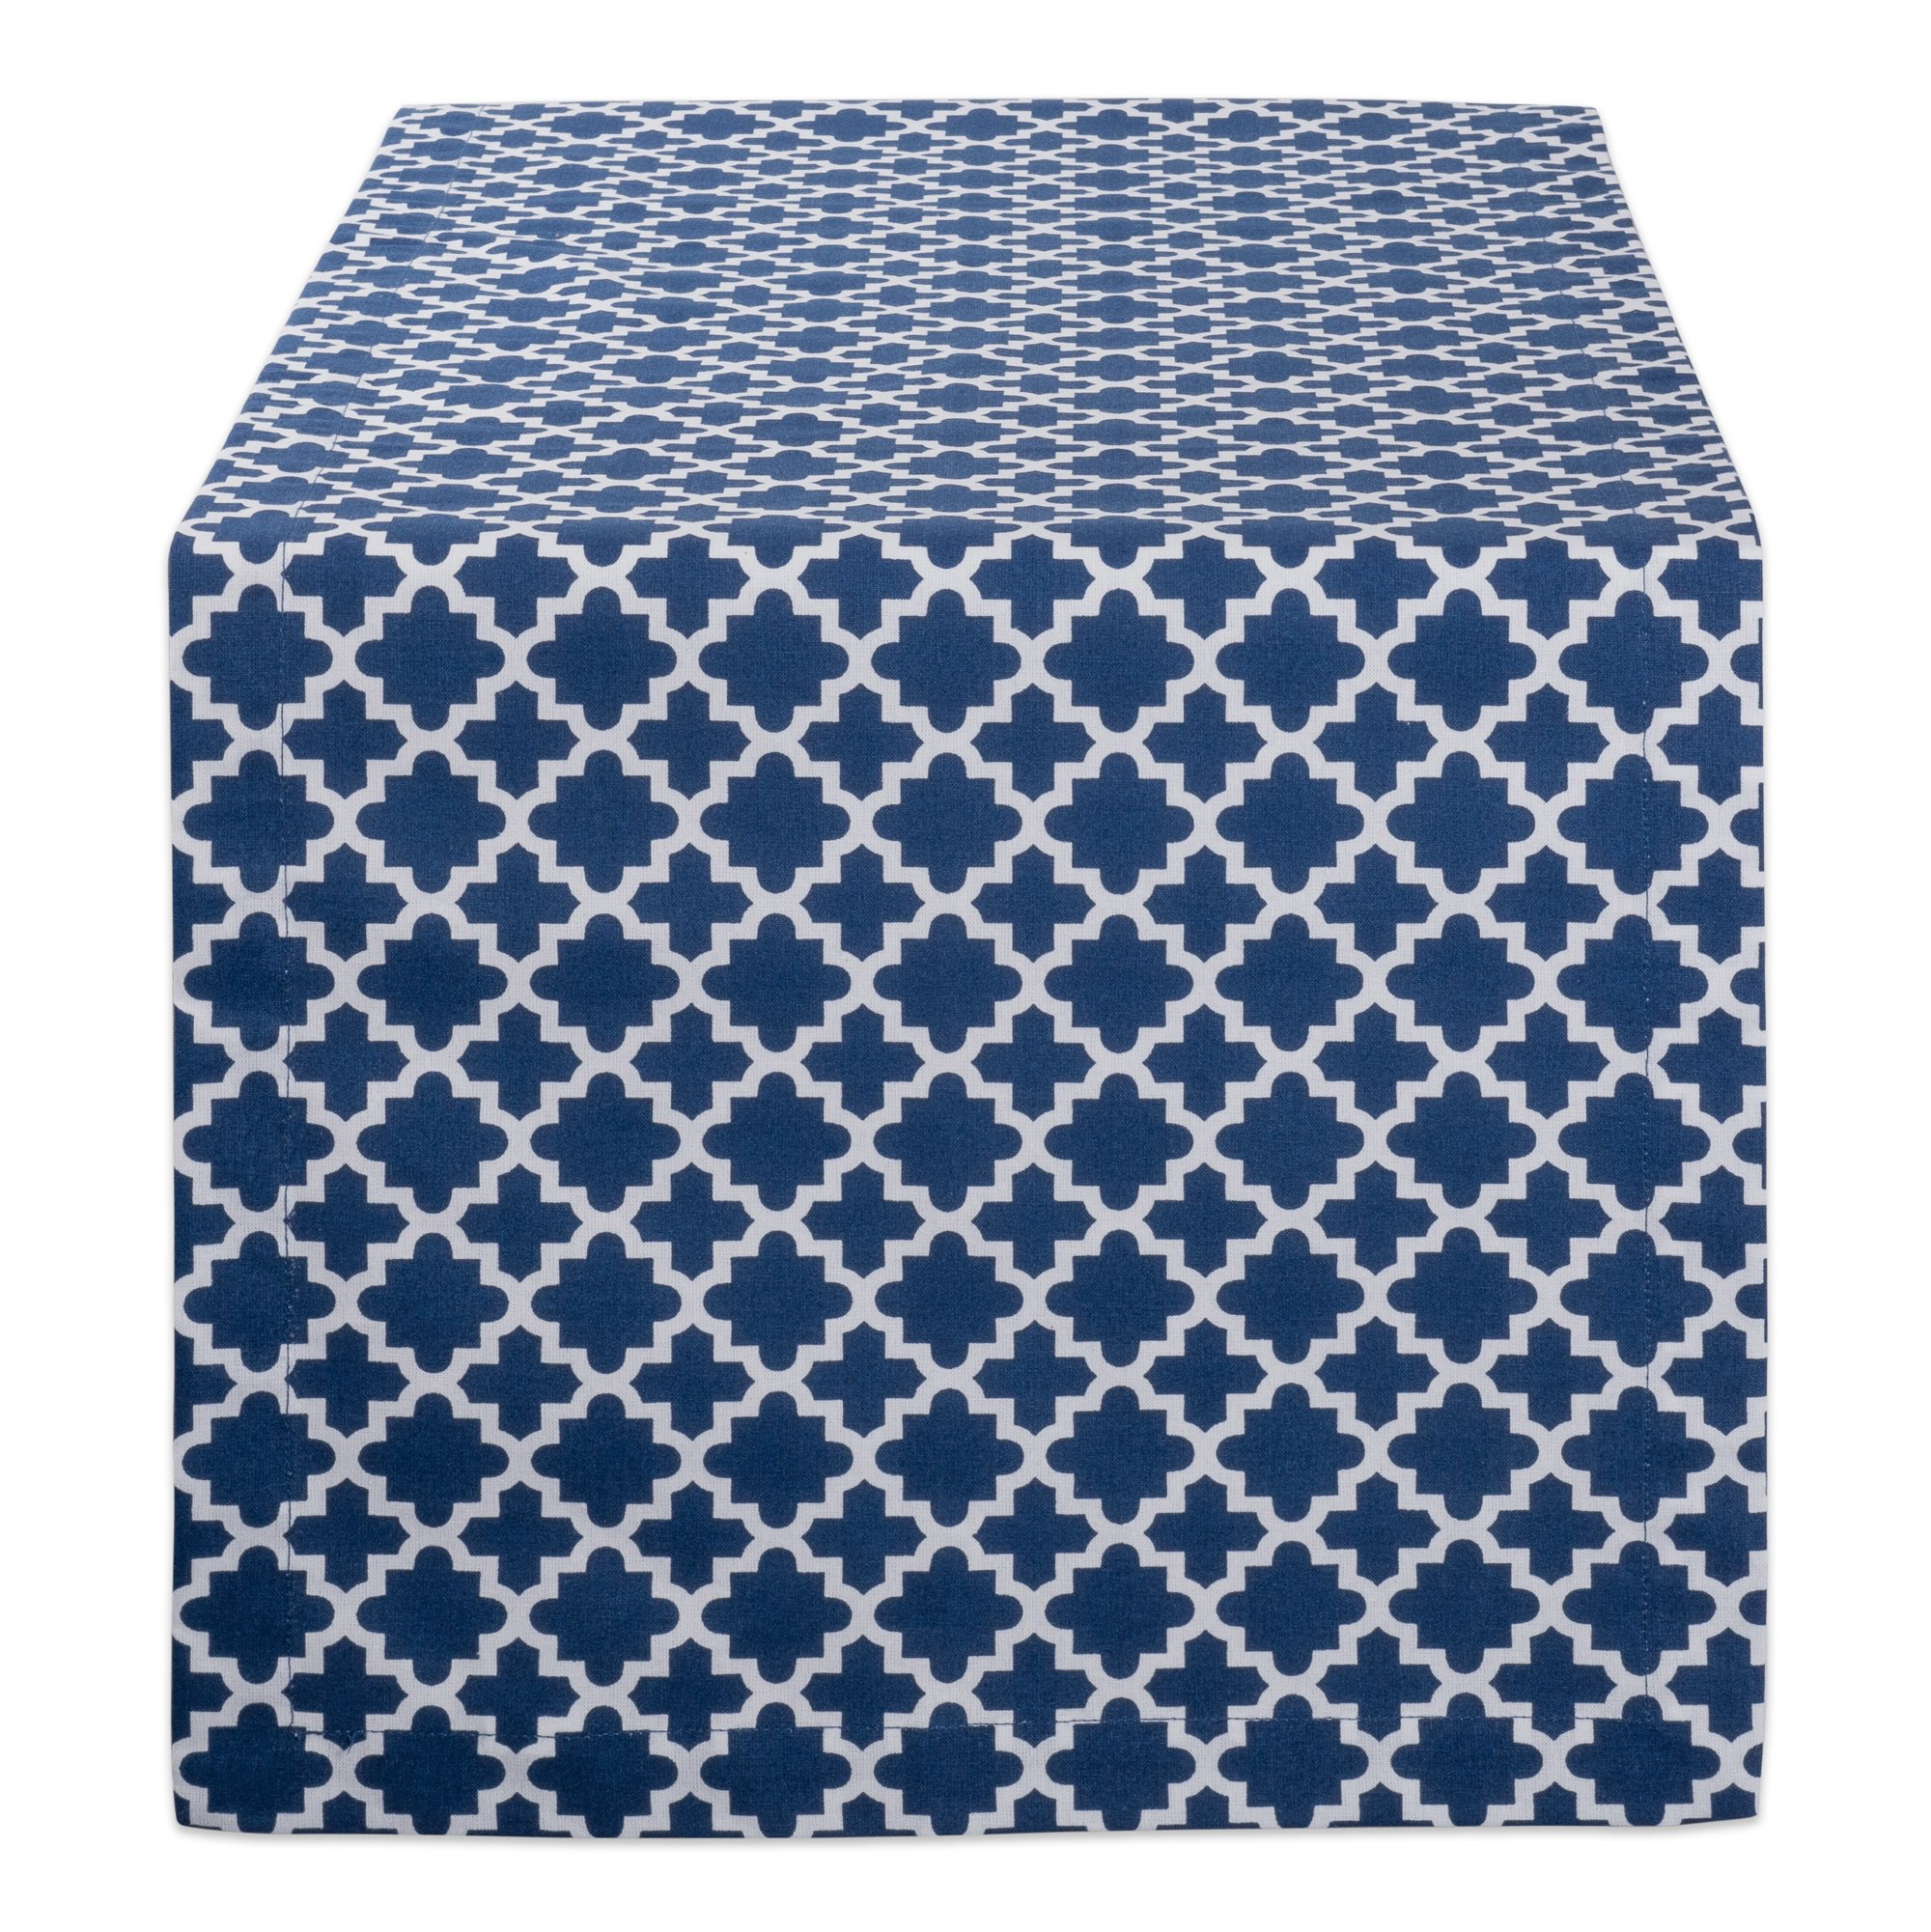 DII Lattice Cotton Table Runner for Dining Room, Foyer Table, Summer Parties and Everyday Use - 14x108'', Nautical Blue and White by DII (Image #1)